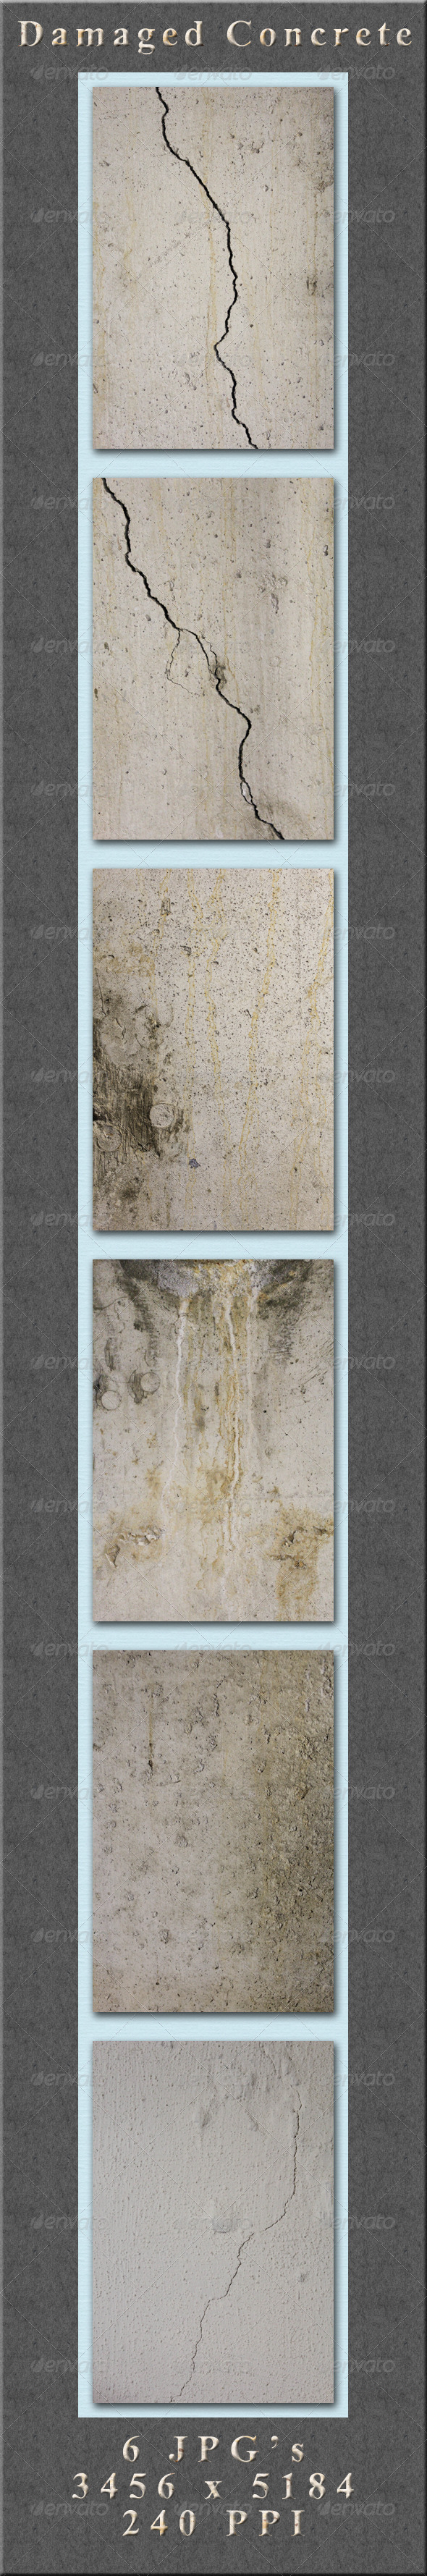 GraphicRiver Damaged Concrete 4329541